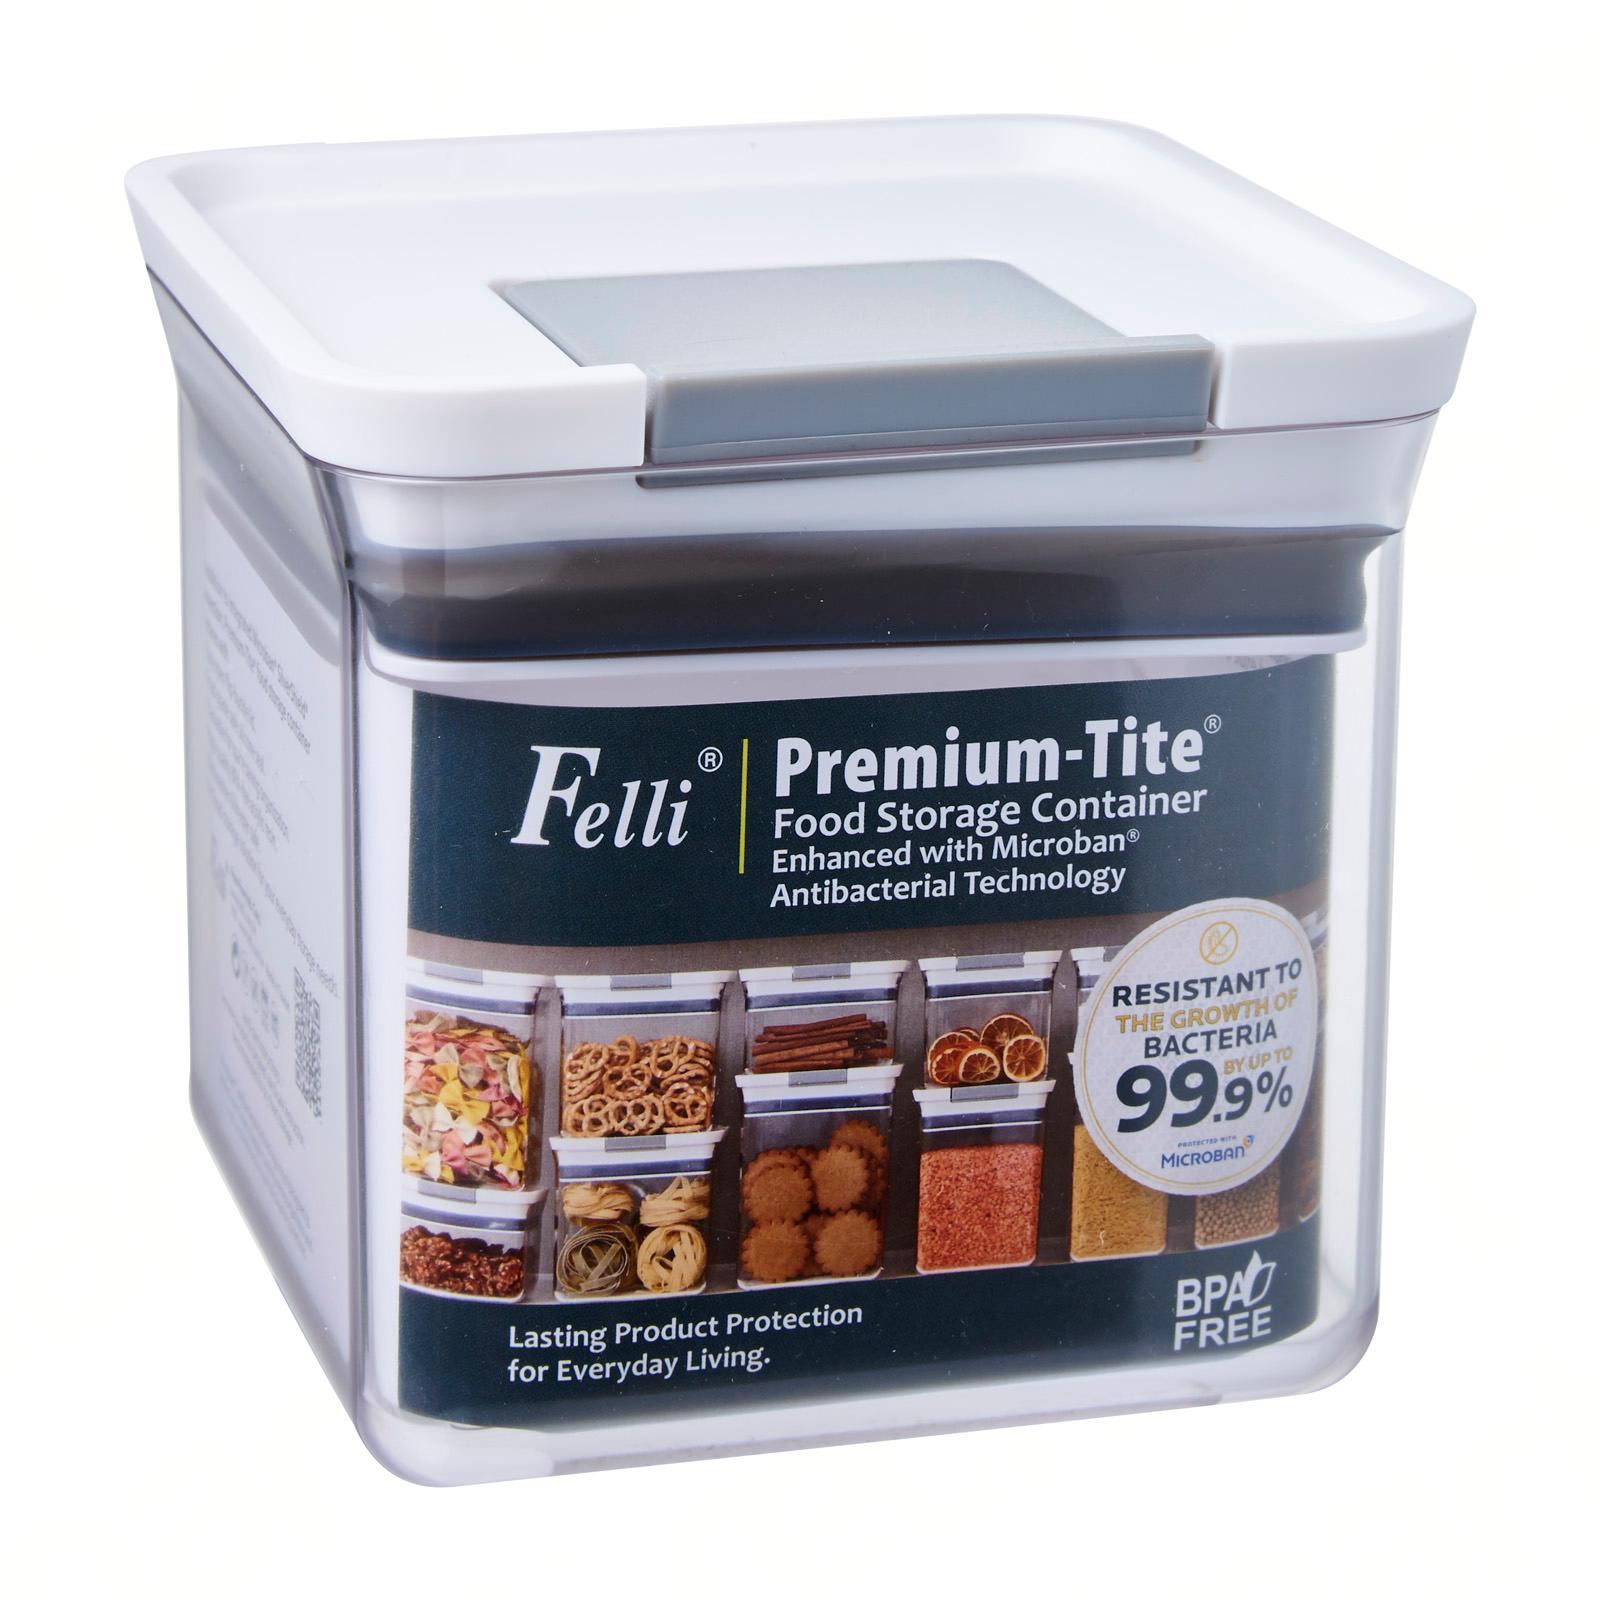 Felli Premium Tite Food Storage Container Enhanced with Microban Antibacterial Technology 1.0L